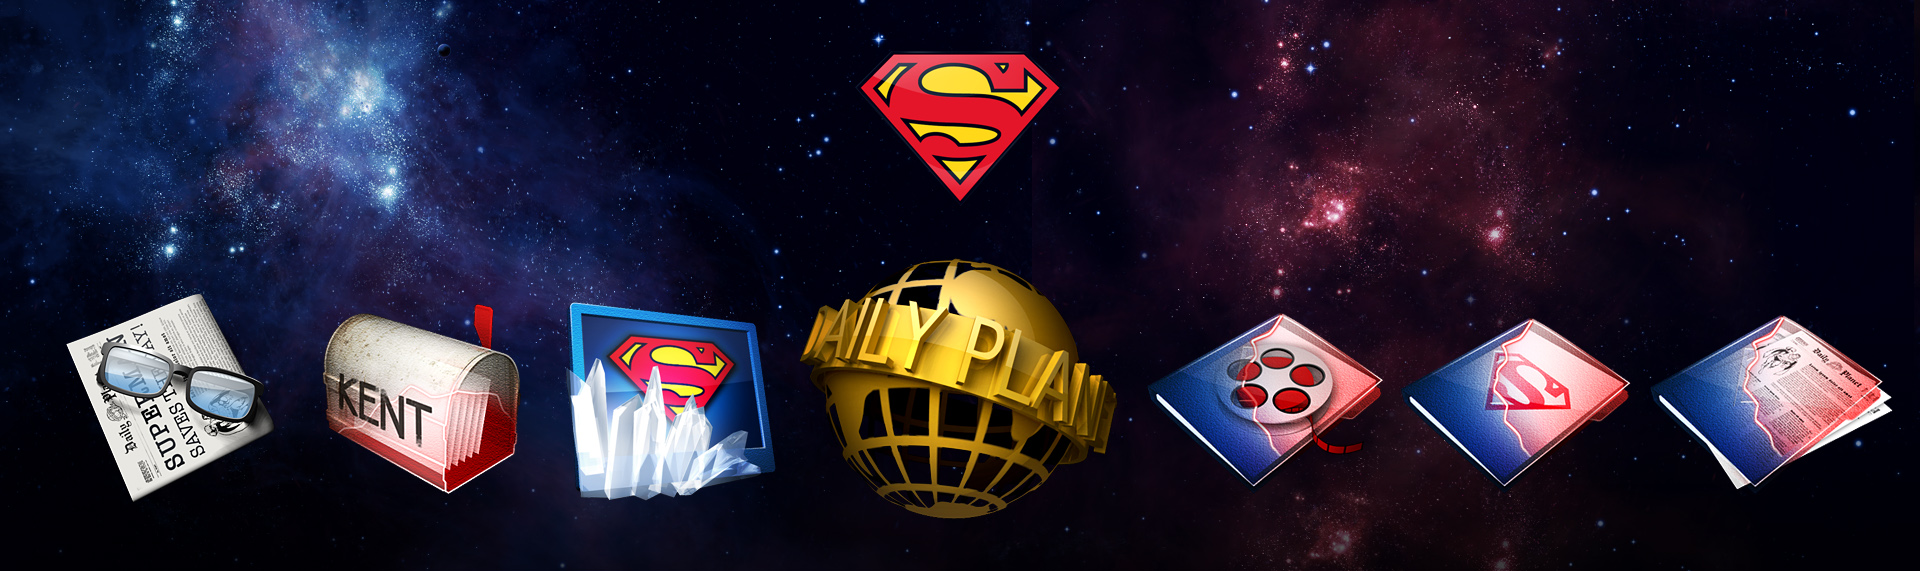 "Alienware: Superman Special Edition Windows Desktop Icon Set  Client: Alienware Corporation  Alienware released limited-edition desktop & notebook systems inspired by DC Comics iconic Super Hero, Superman. The Skins Factory designed the immersive desktop theme of the famous ""Man of Steel"", that featured a Windows XP theme, icons, custom wallpaper and Windows Media Player skin. We created imagery that keeps with the Superman mythos - from the walk-in telephone booth to kryptonite. SUPERMAN and all related characters and elements are trademarks of and DC Comics. (s06). Theme is no longer available."